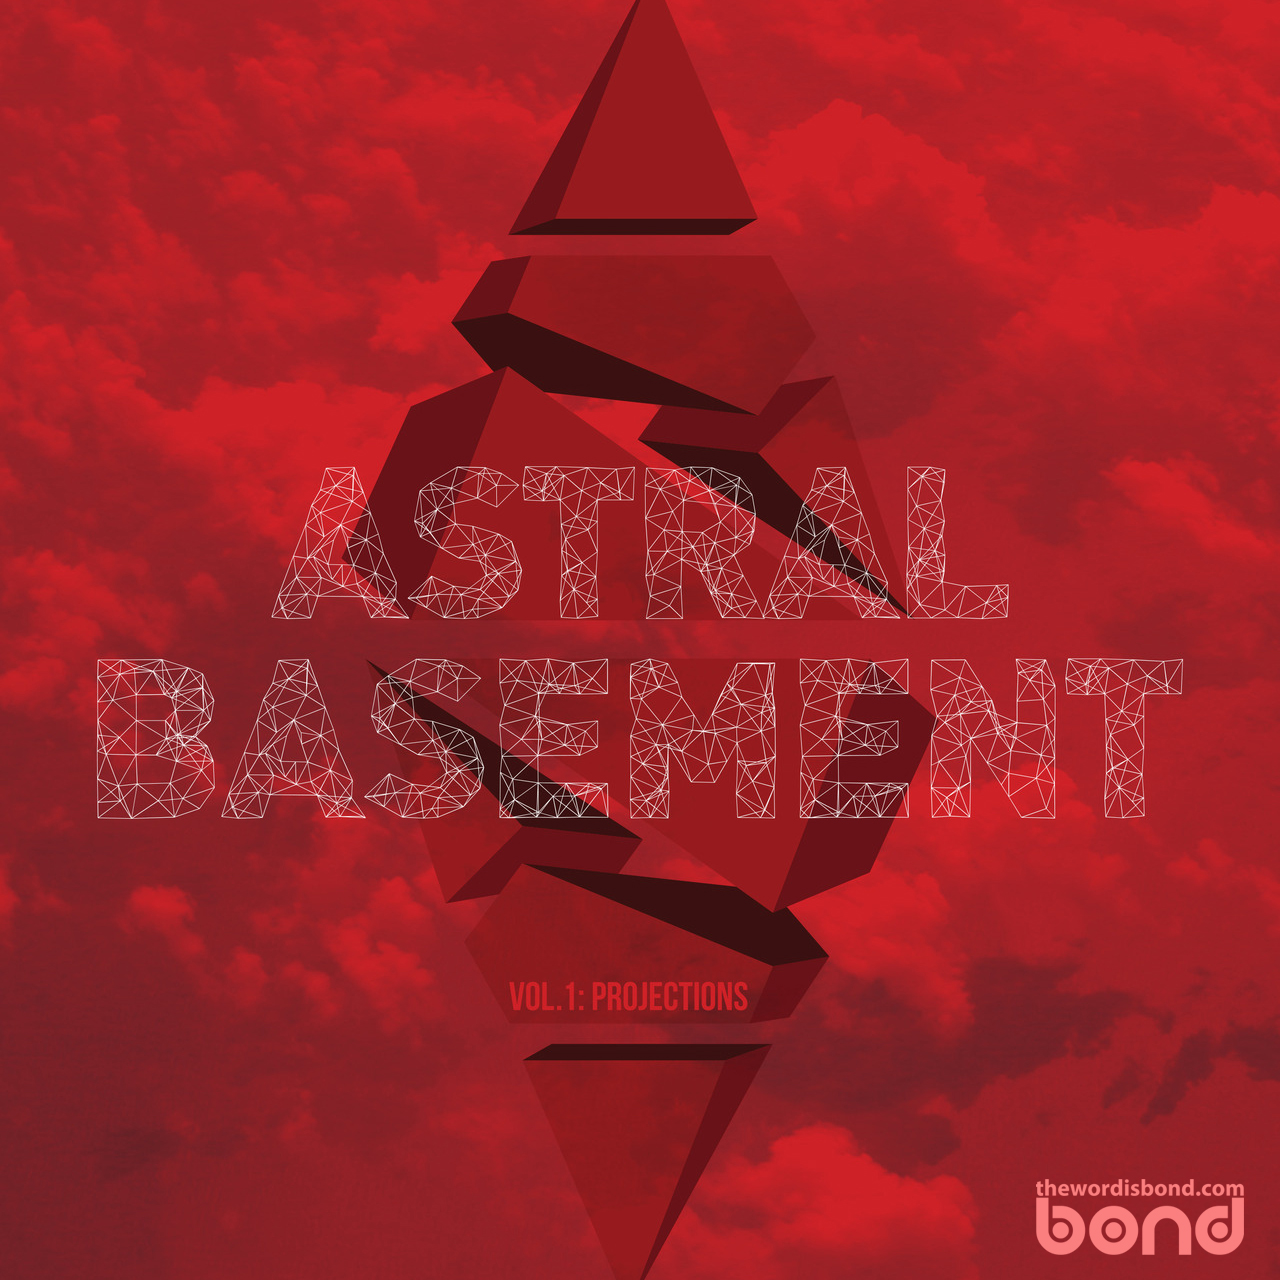 Free Download: Astral Basement – Vol. 1: Projections